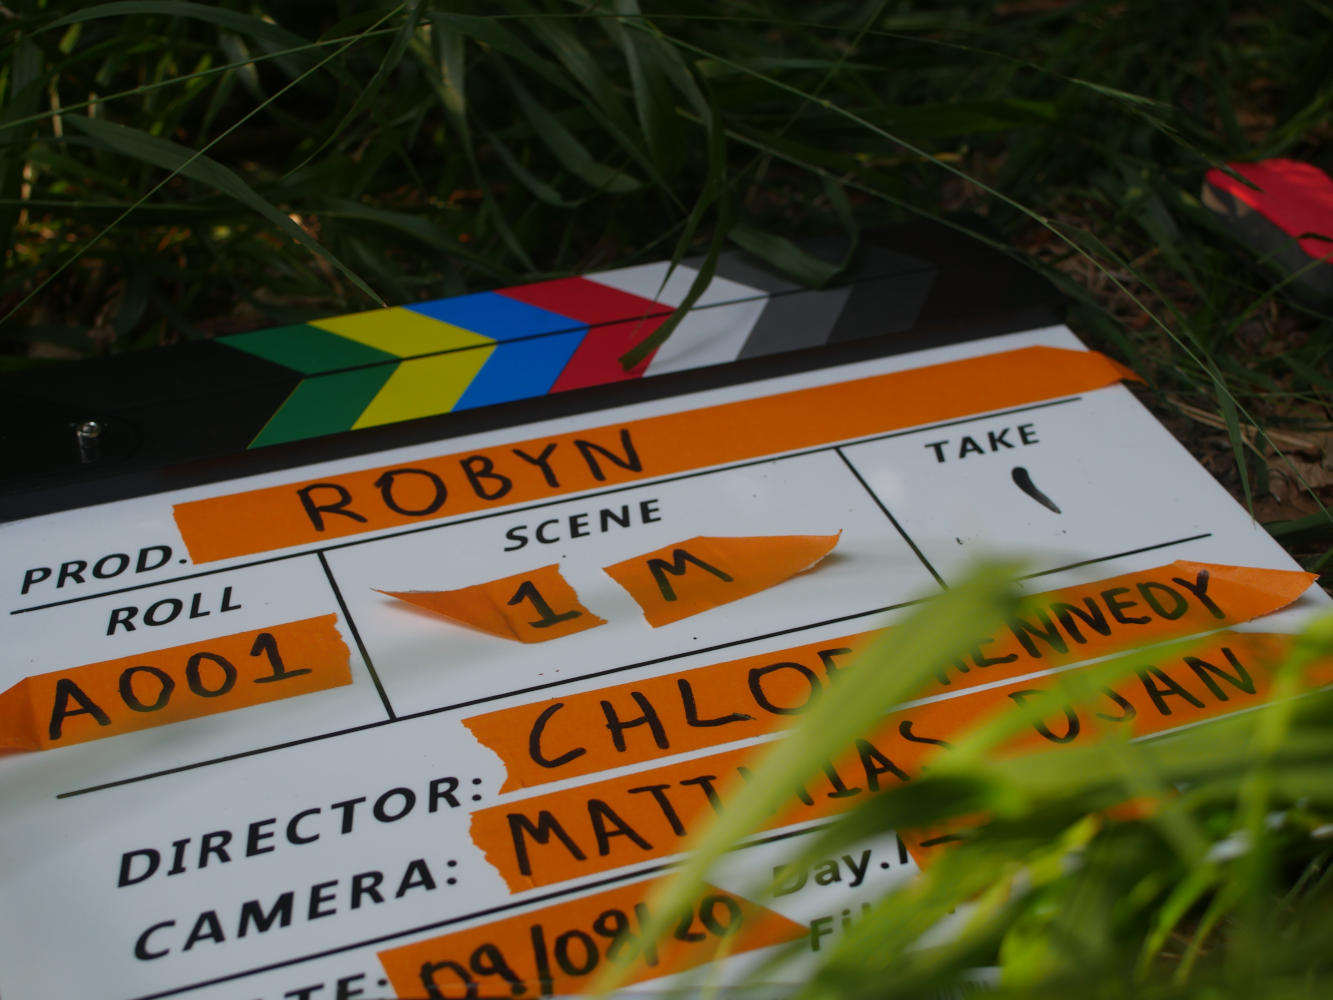 Behind the scenes image from short film Robyn of clapperboard/ slate